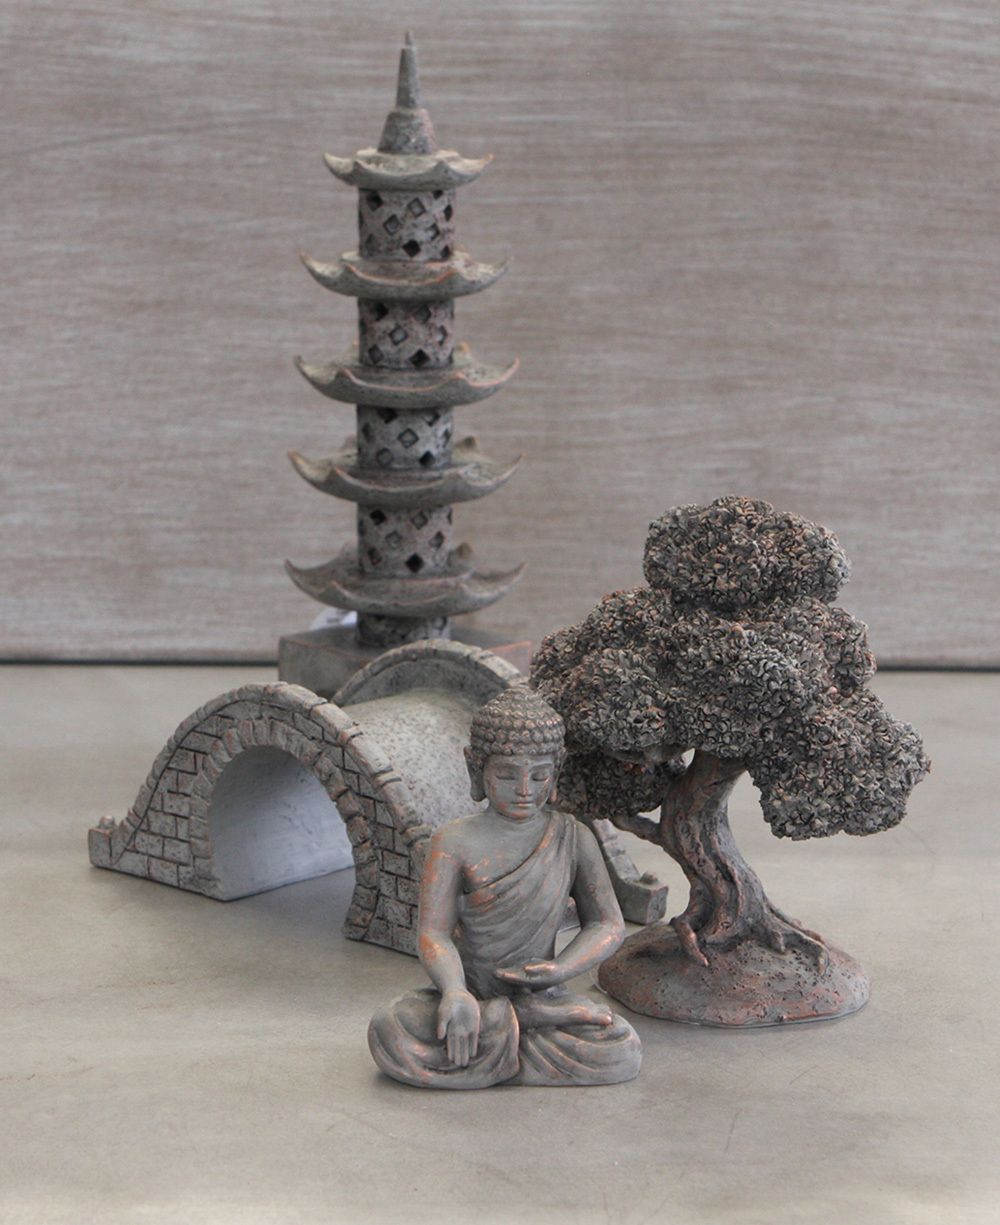 buddha garden oasis set miniature statue zen garden set buddha statues pinterest garden. Black Bedroom Furniture Sets. Home Design Ideas